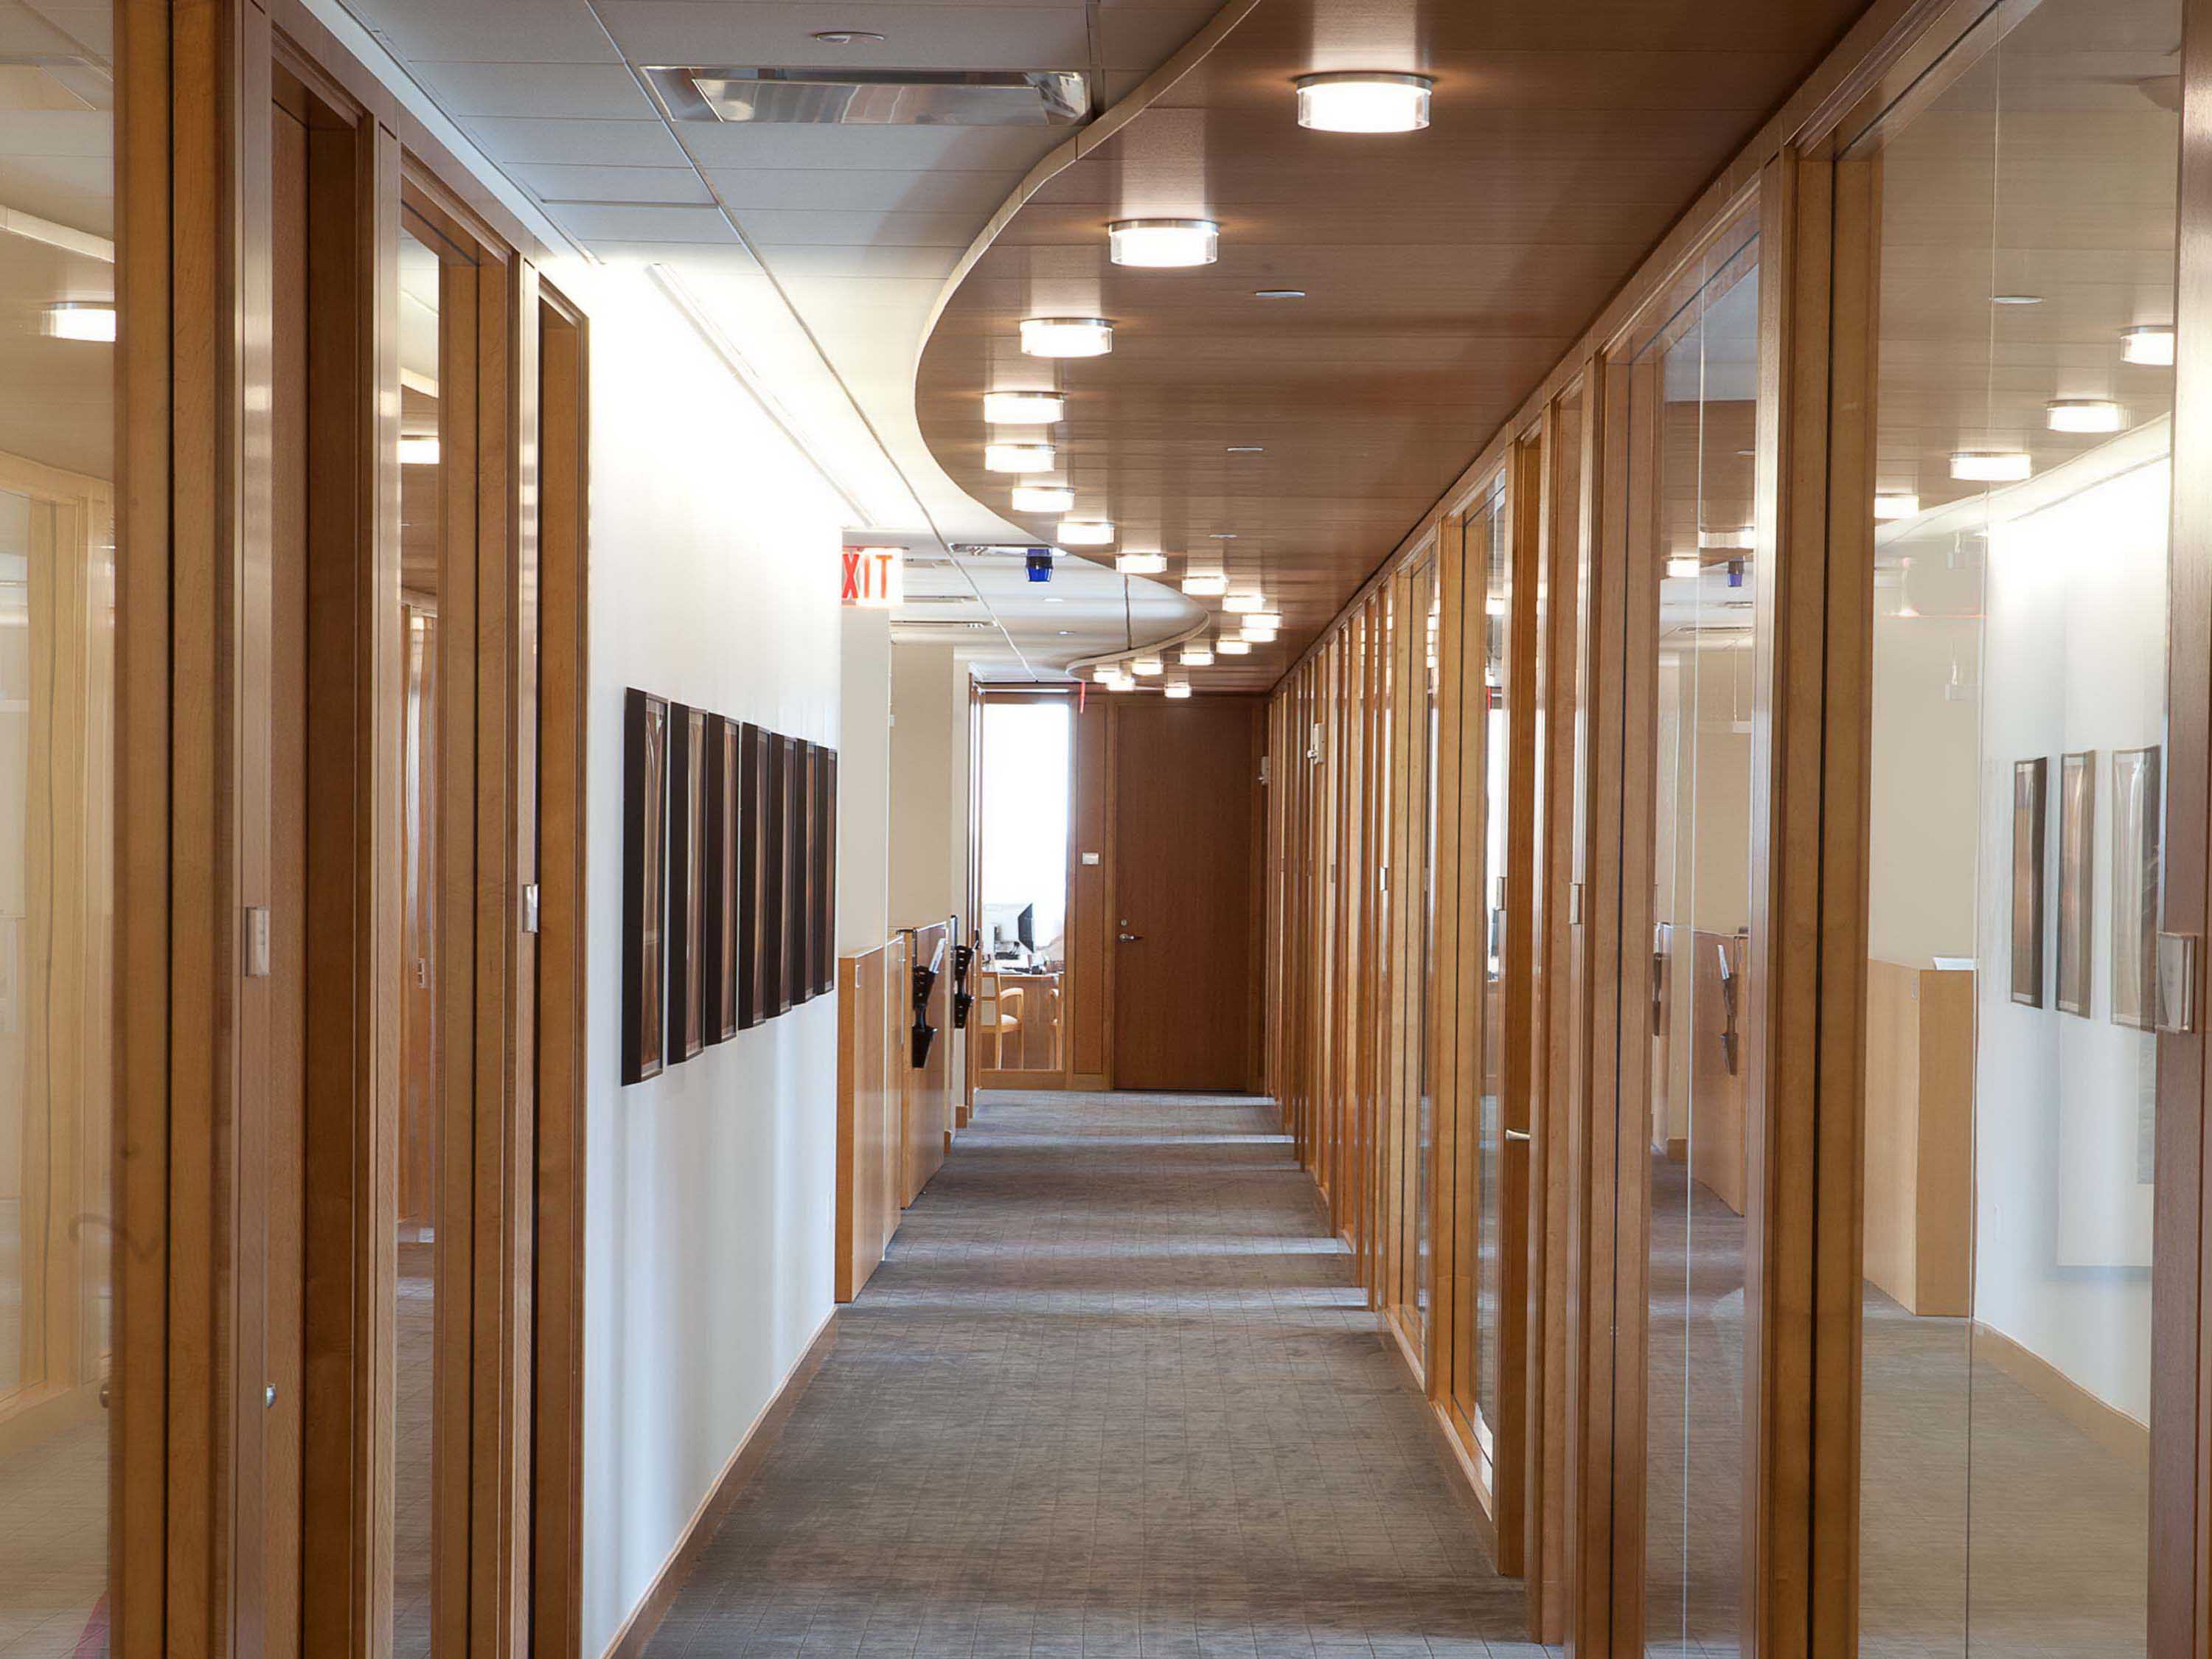 Corridor Design Ceiling: Decoding The Design Dictionary: The Soffit And How It Adds